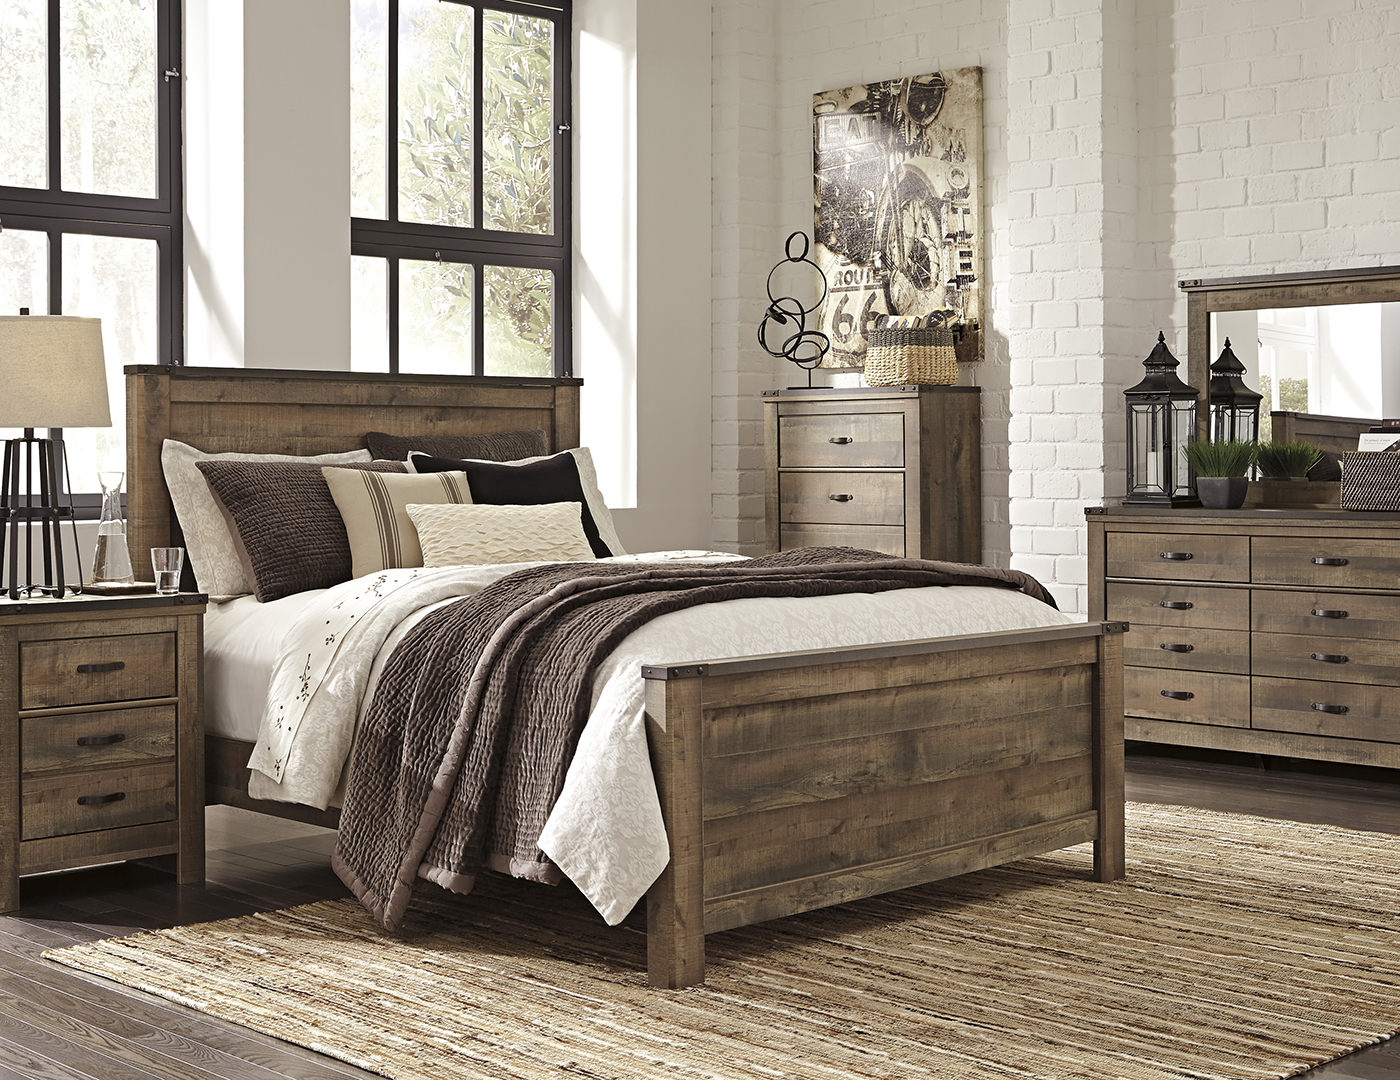 Charmant Queen Bedroom Set